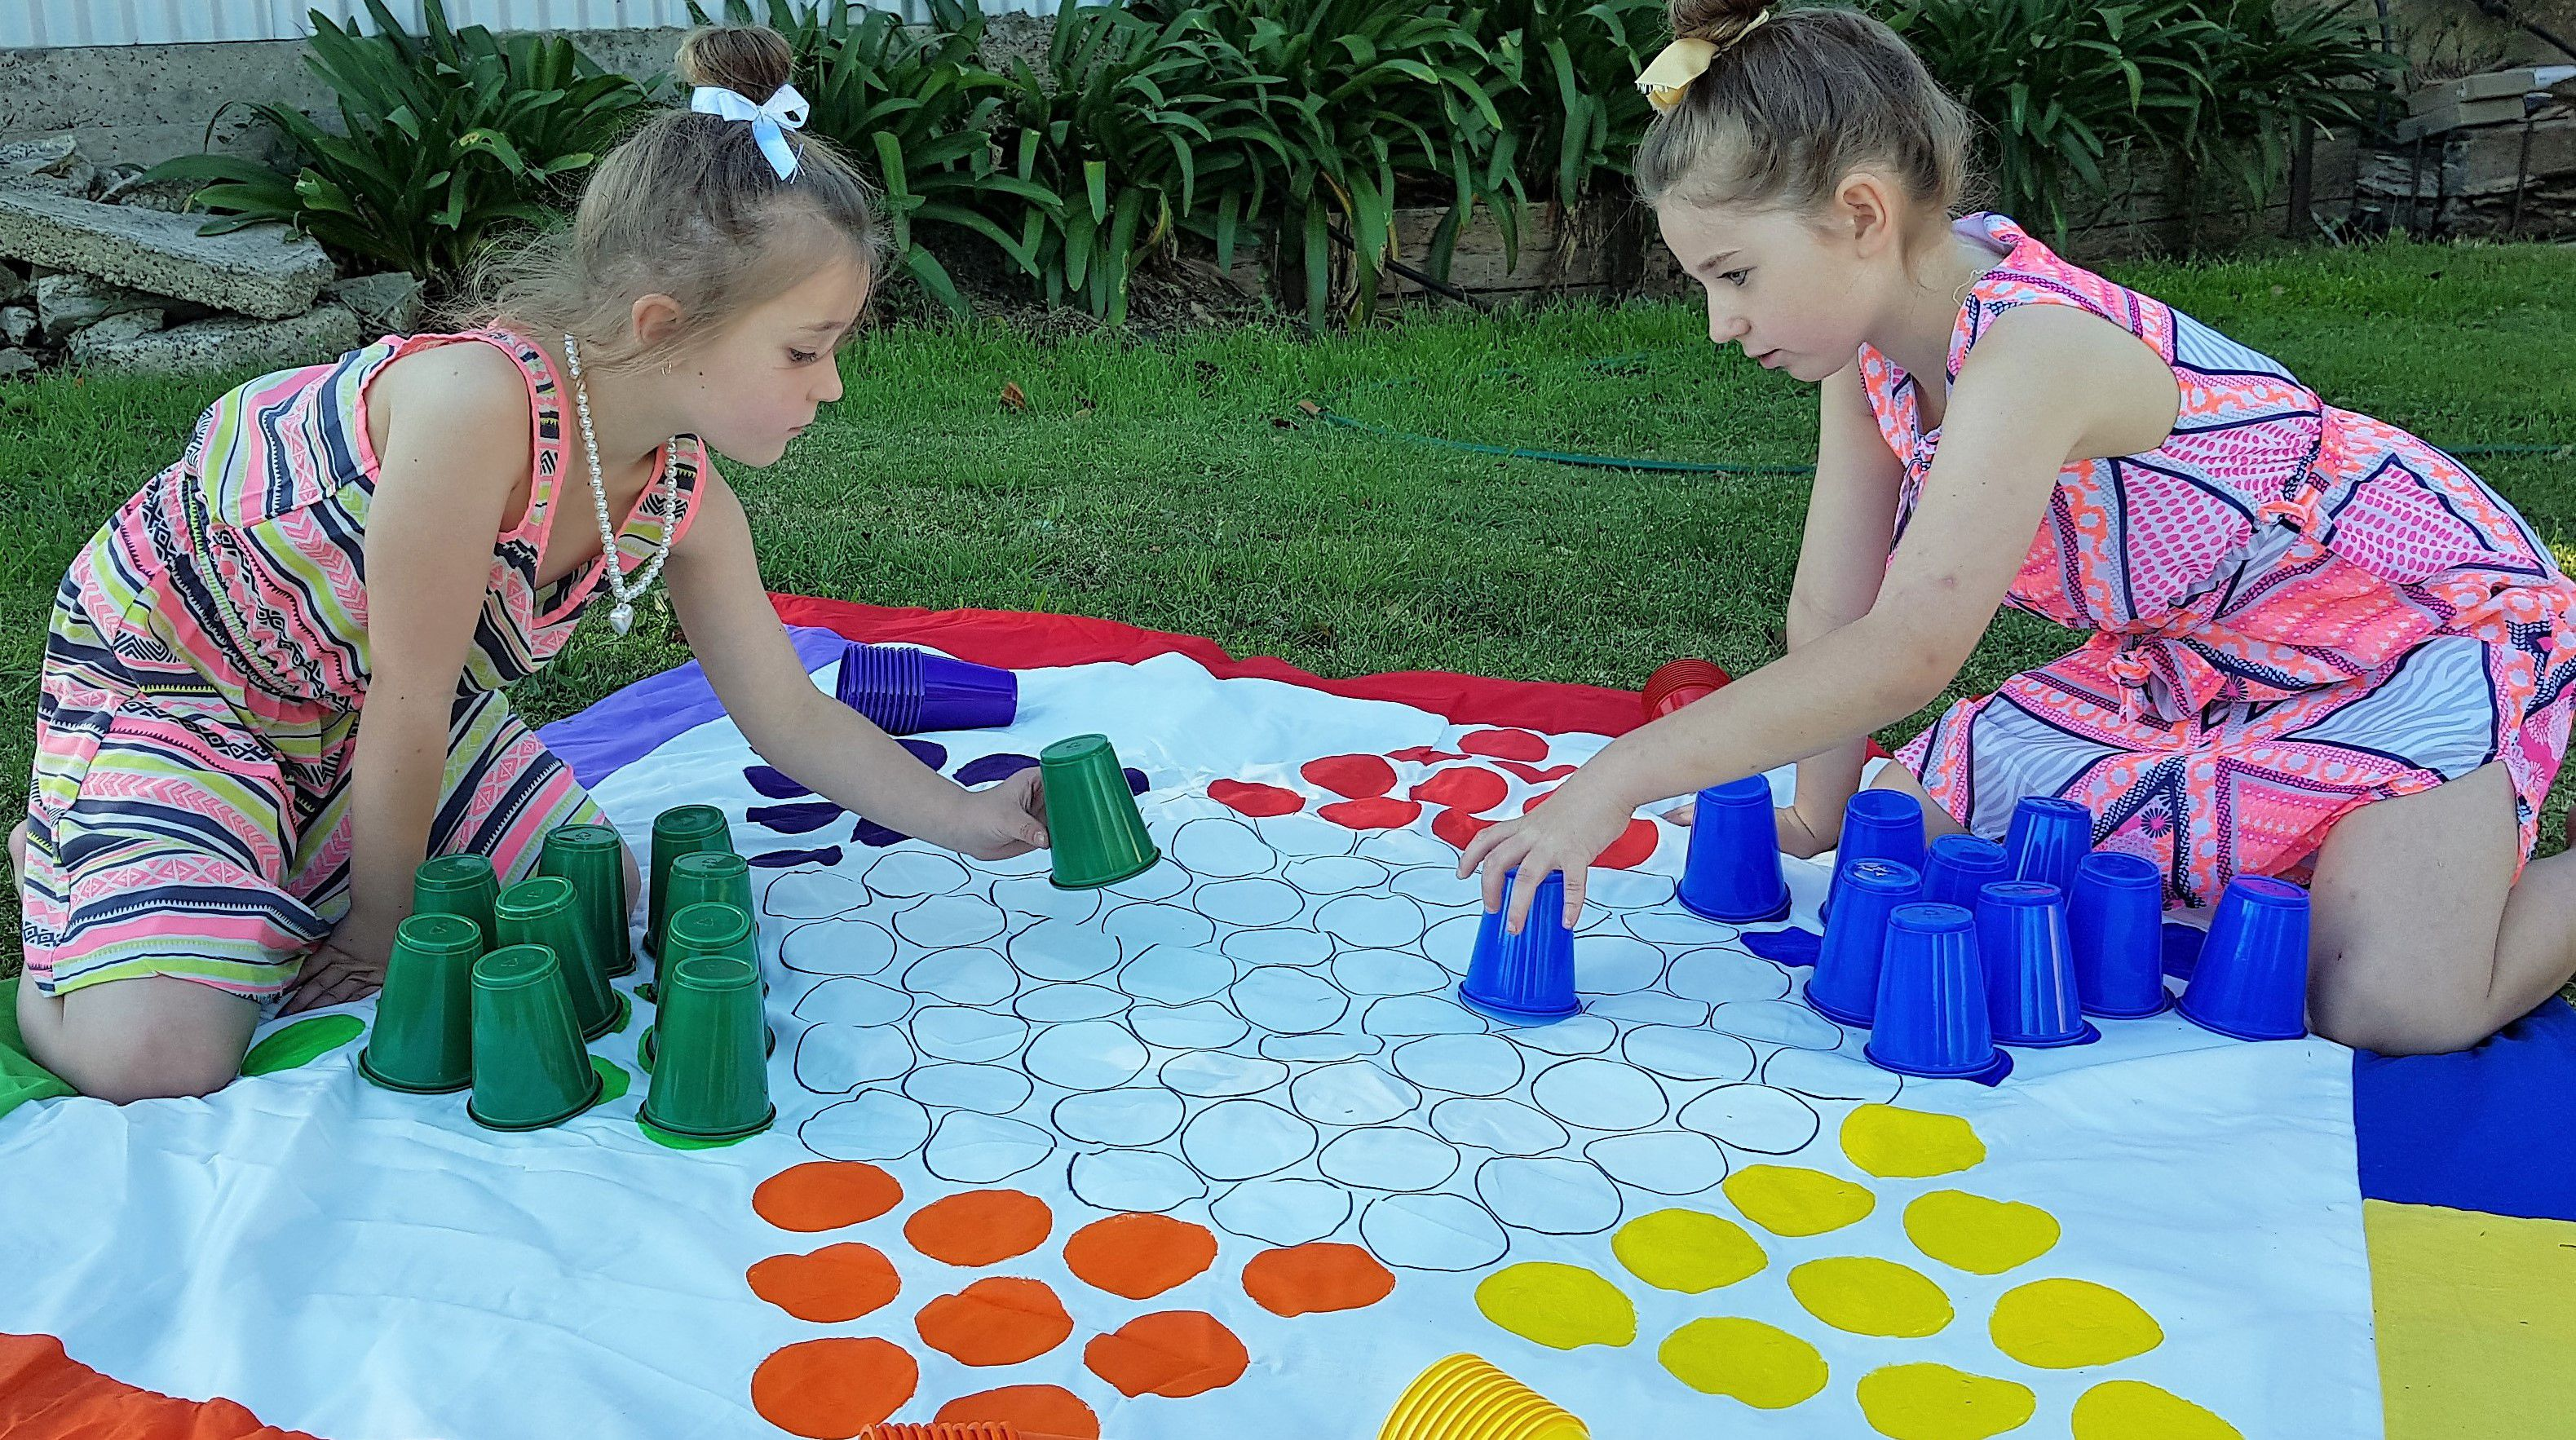 Chinese Checkers Outdoor Giant Lawn Games